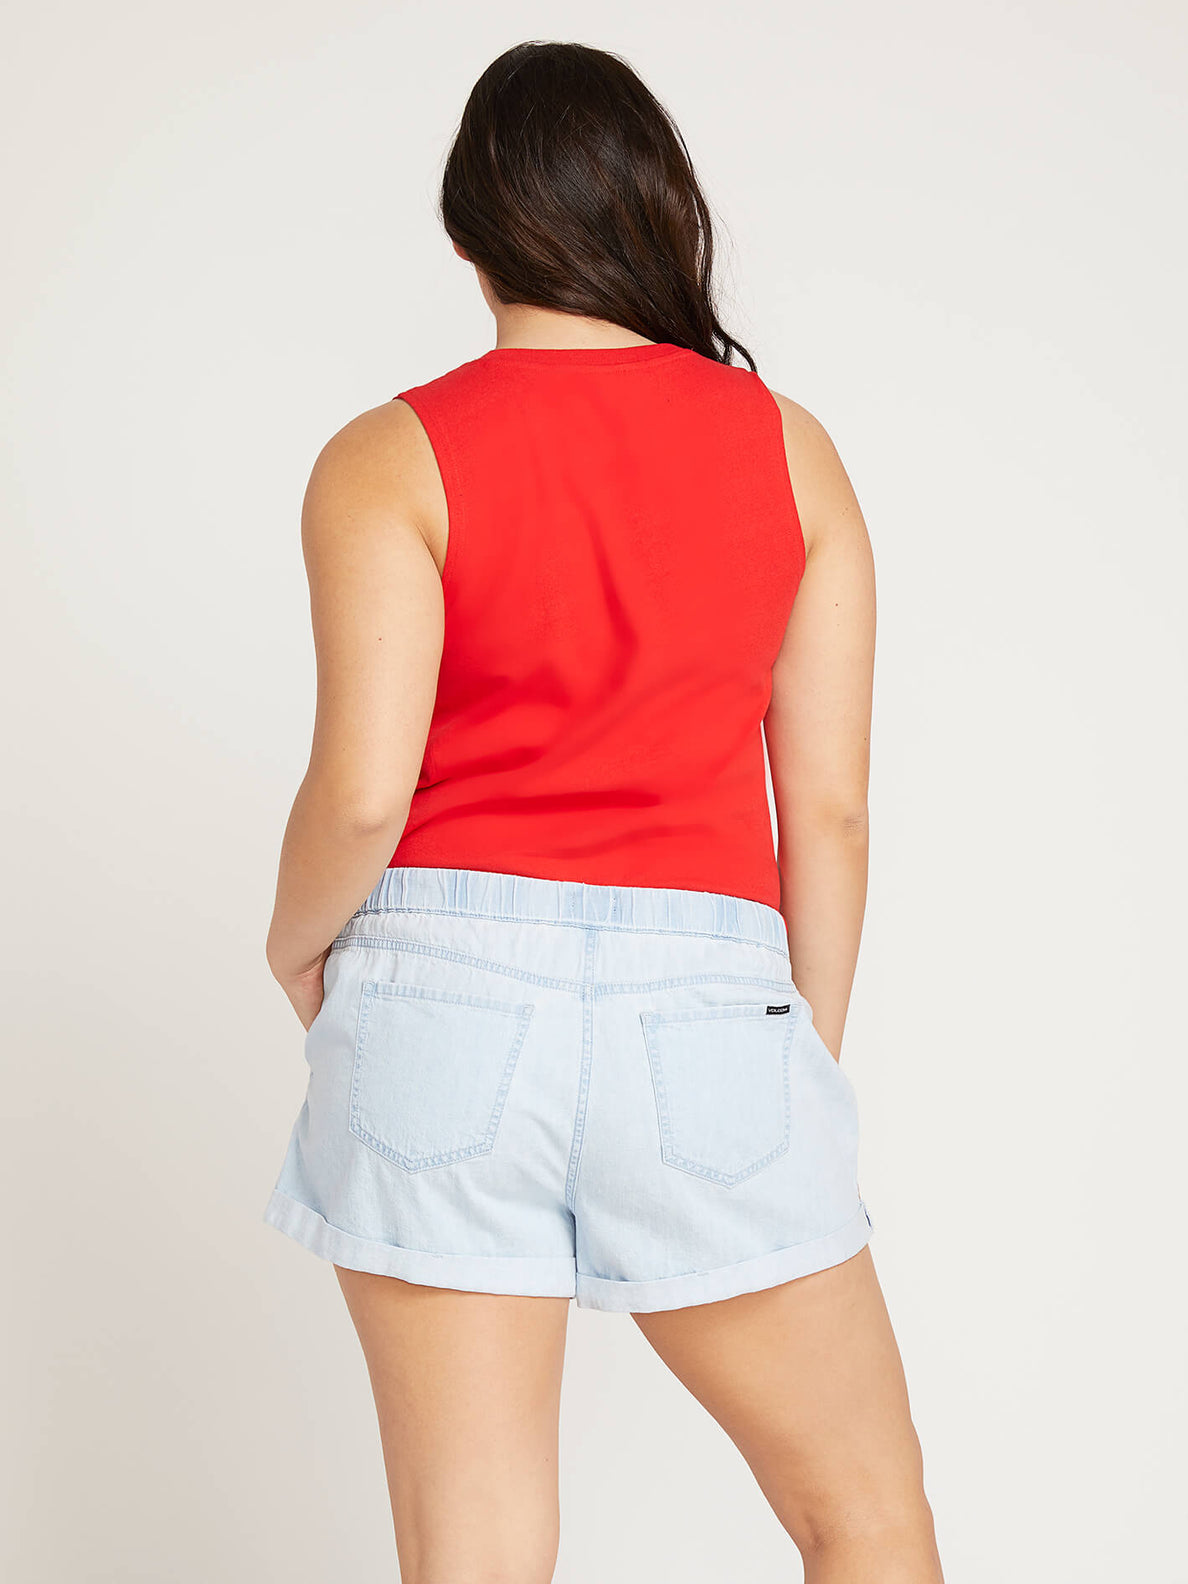 Volcom Love Tank In Red, Back Extended Size View